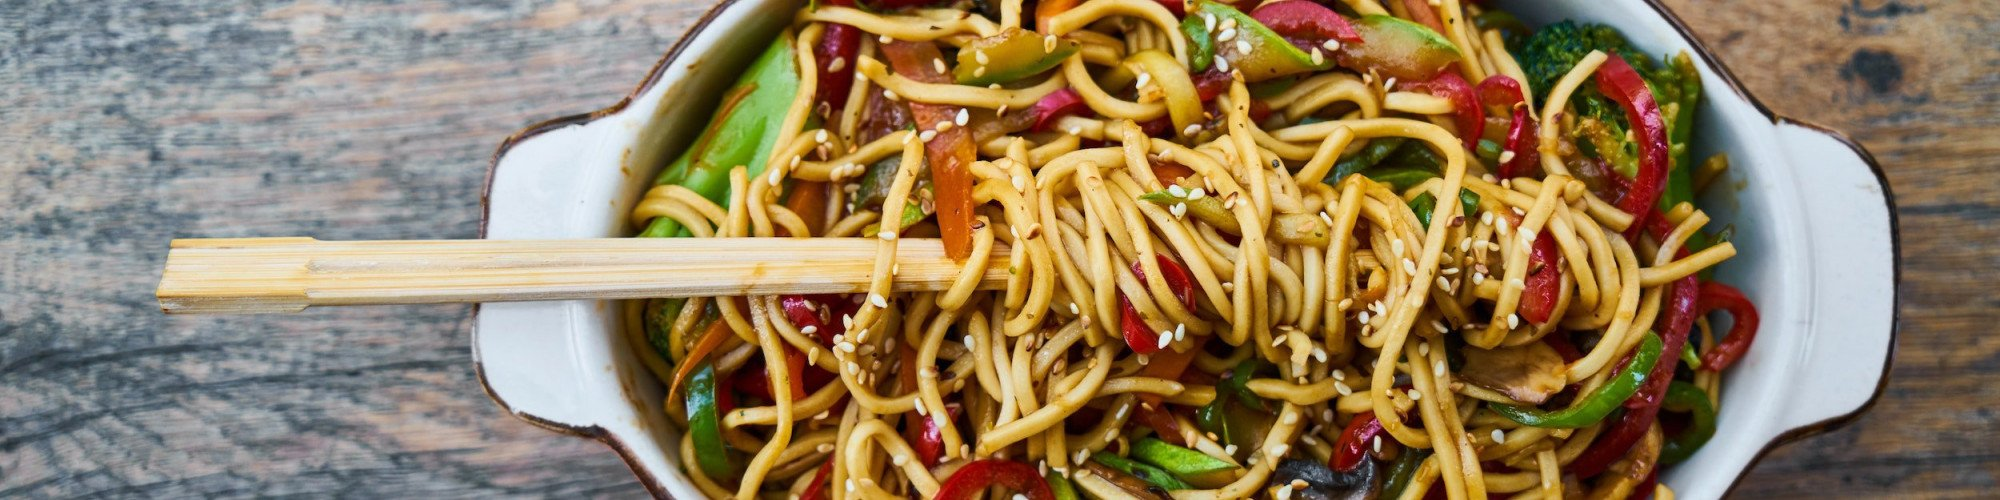 stir fry noodles in bowl 2347311